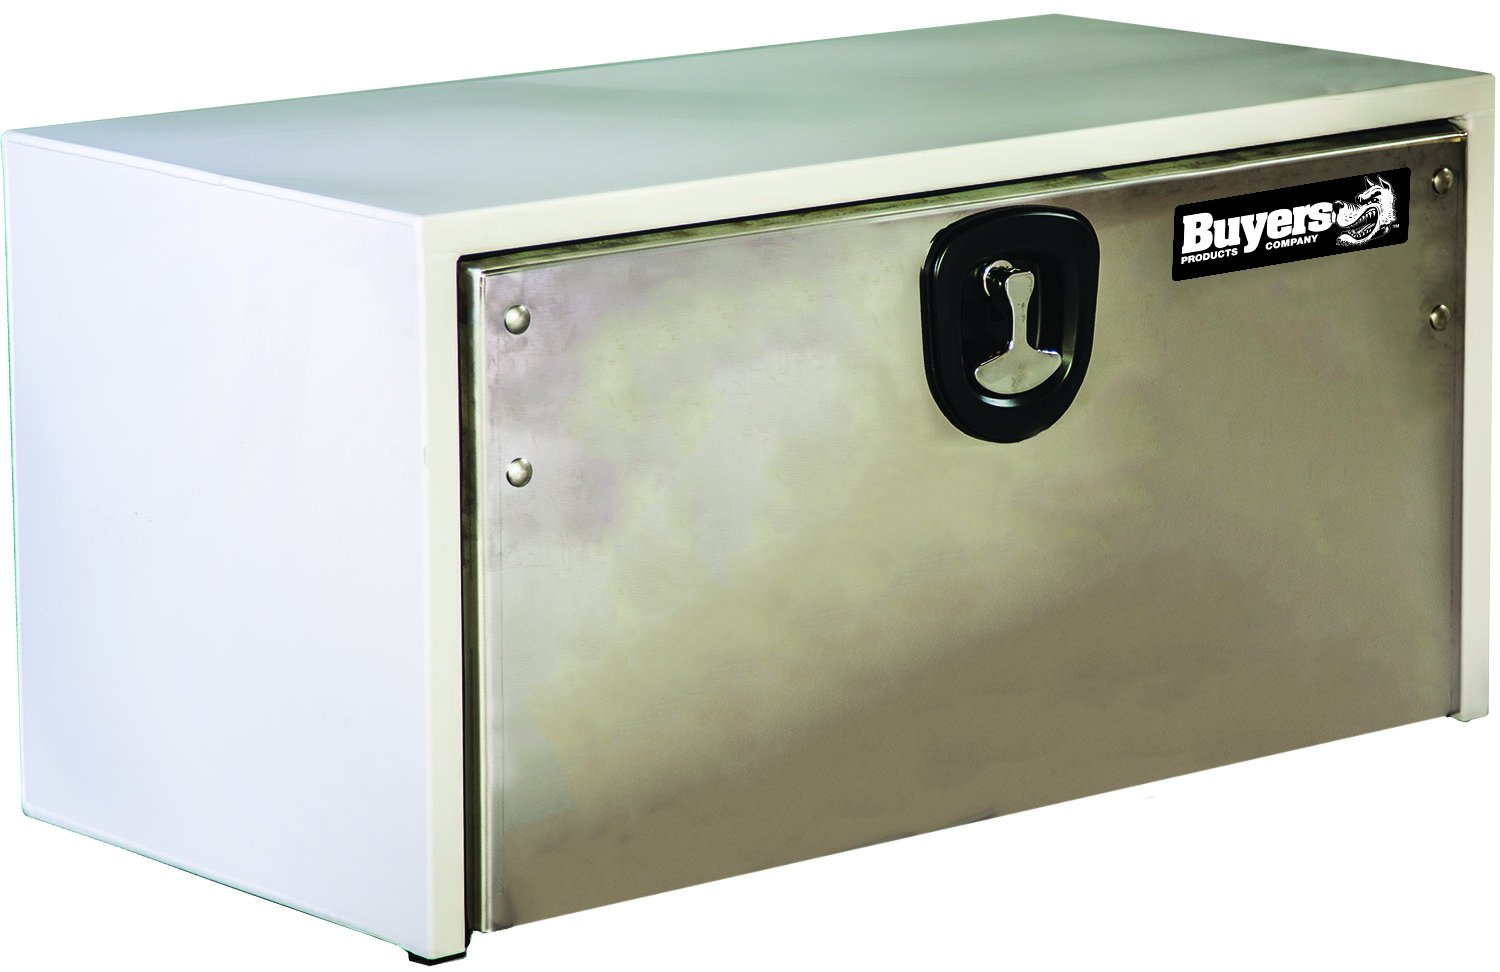 Buyers Products White Steel Underbody Truck Box w/Stainless Steel Door (18x18x48 Inch)